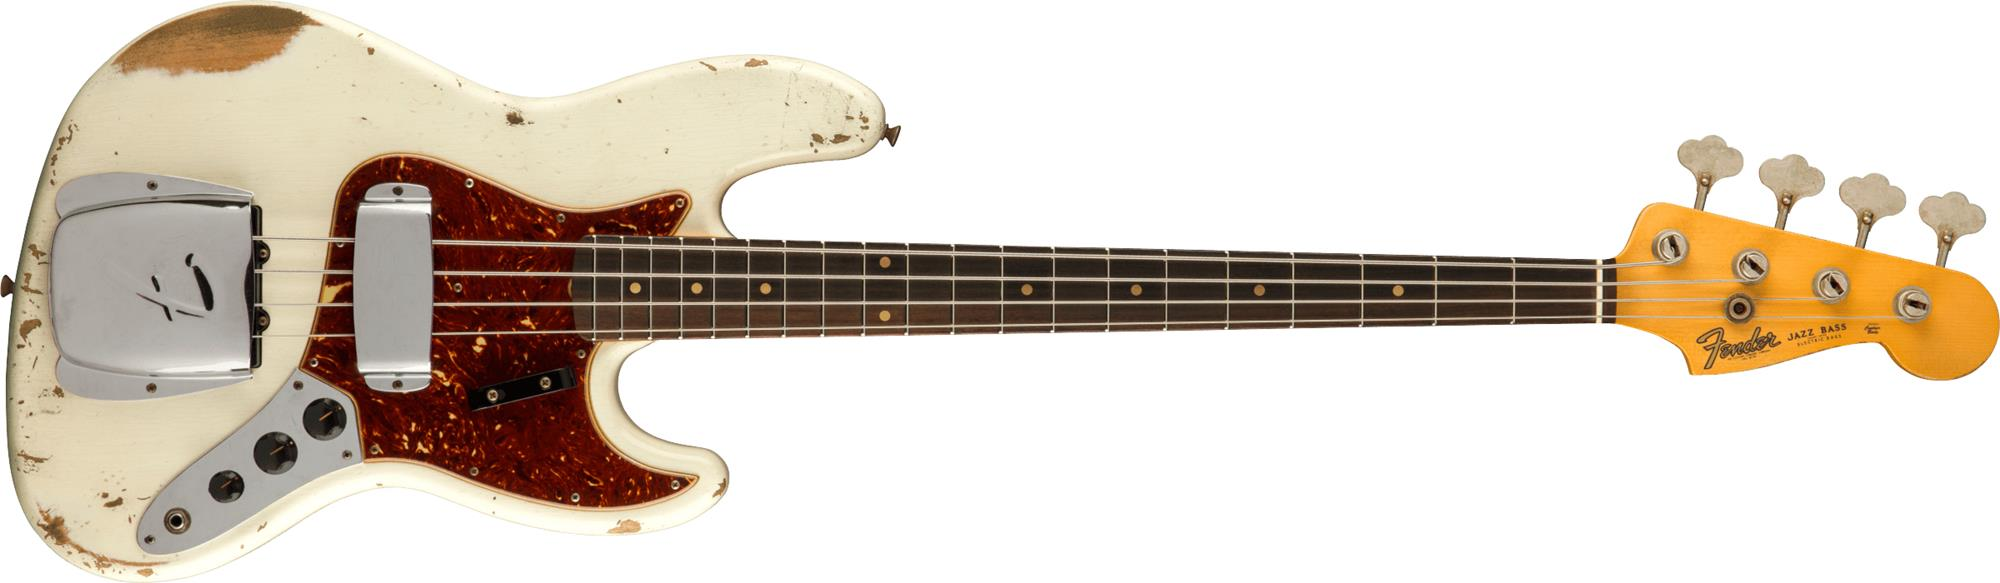 FENDER-1961-Jazz-Bass-Heavy-Relic-Rosewood-Fingerboard-Aged-Olympic-White-sku-571005369